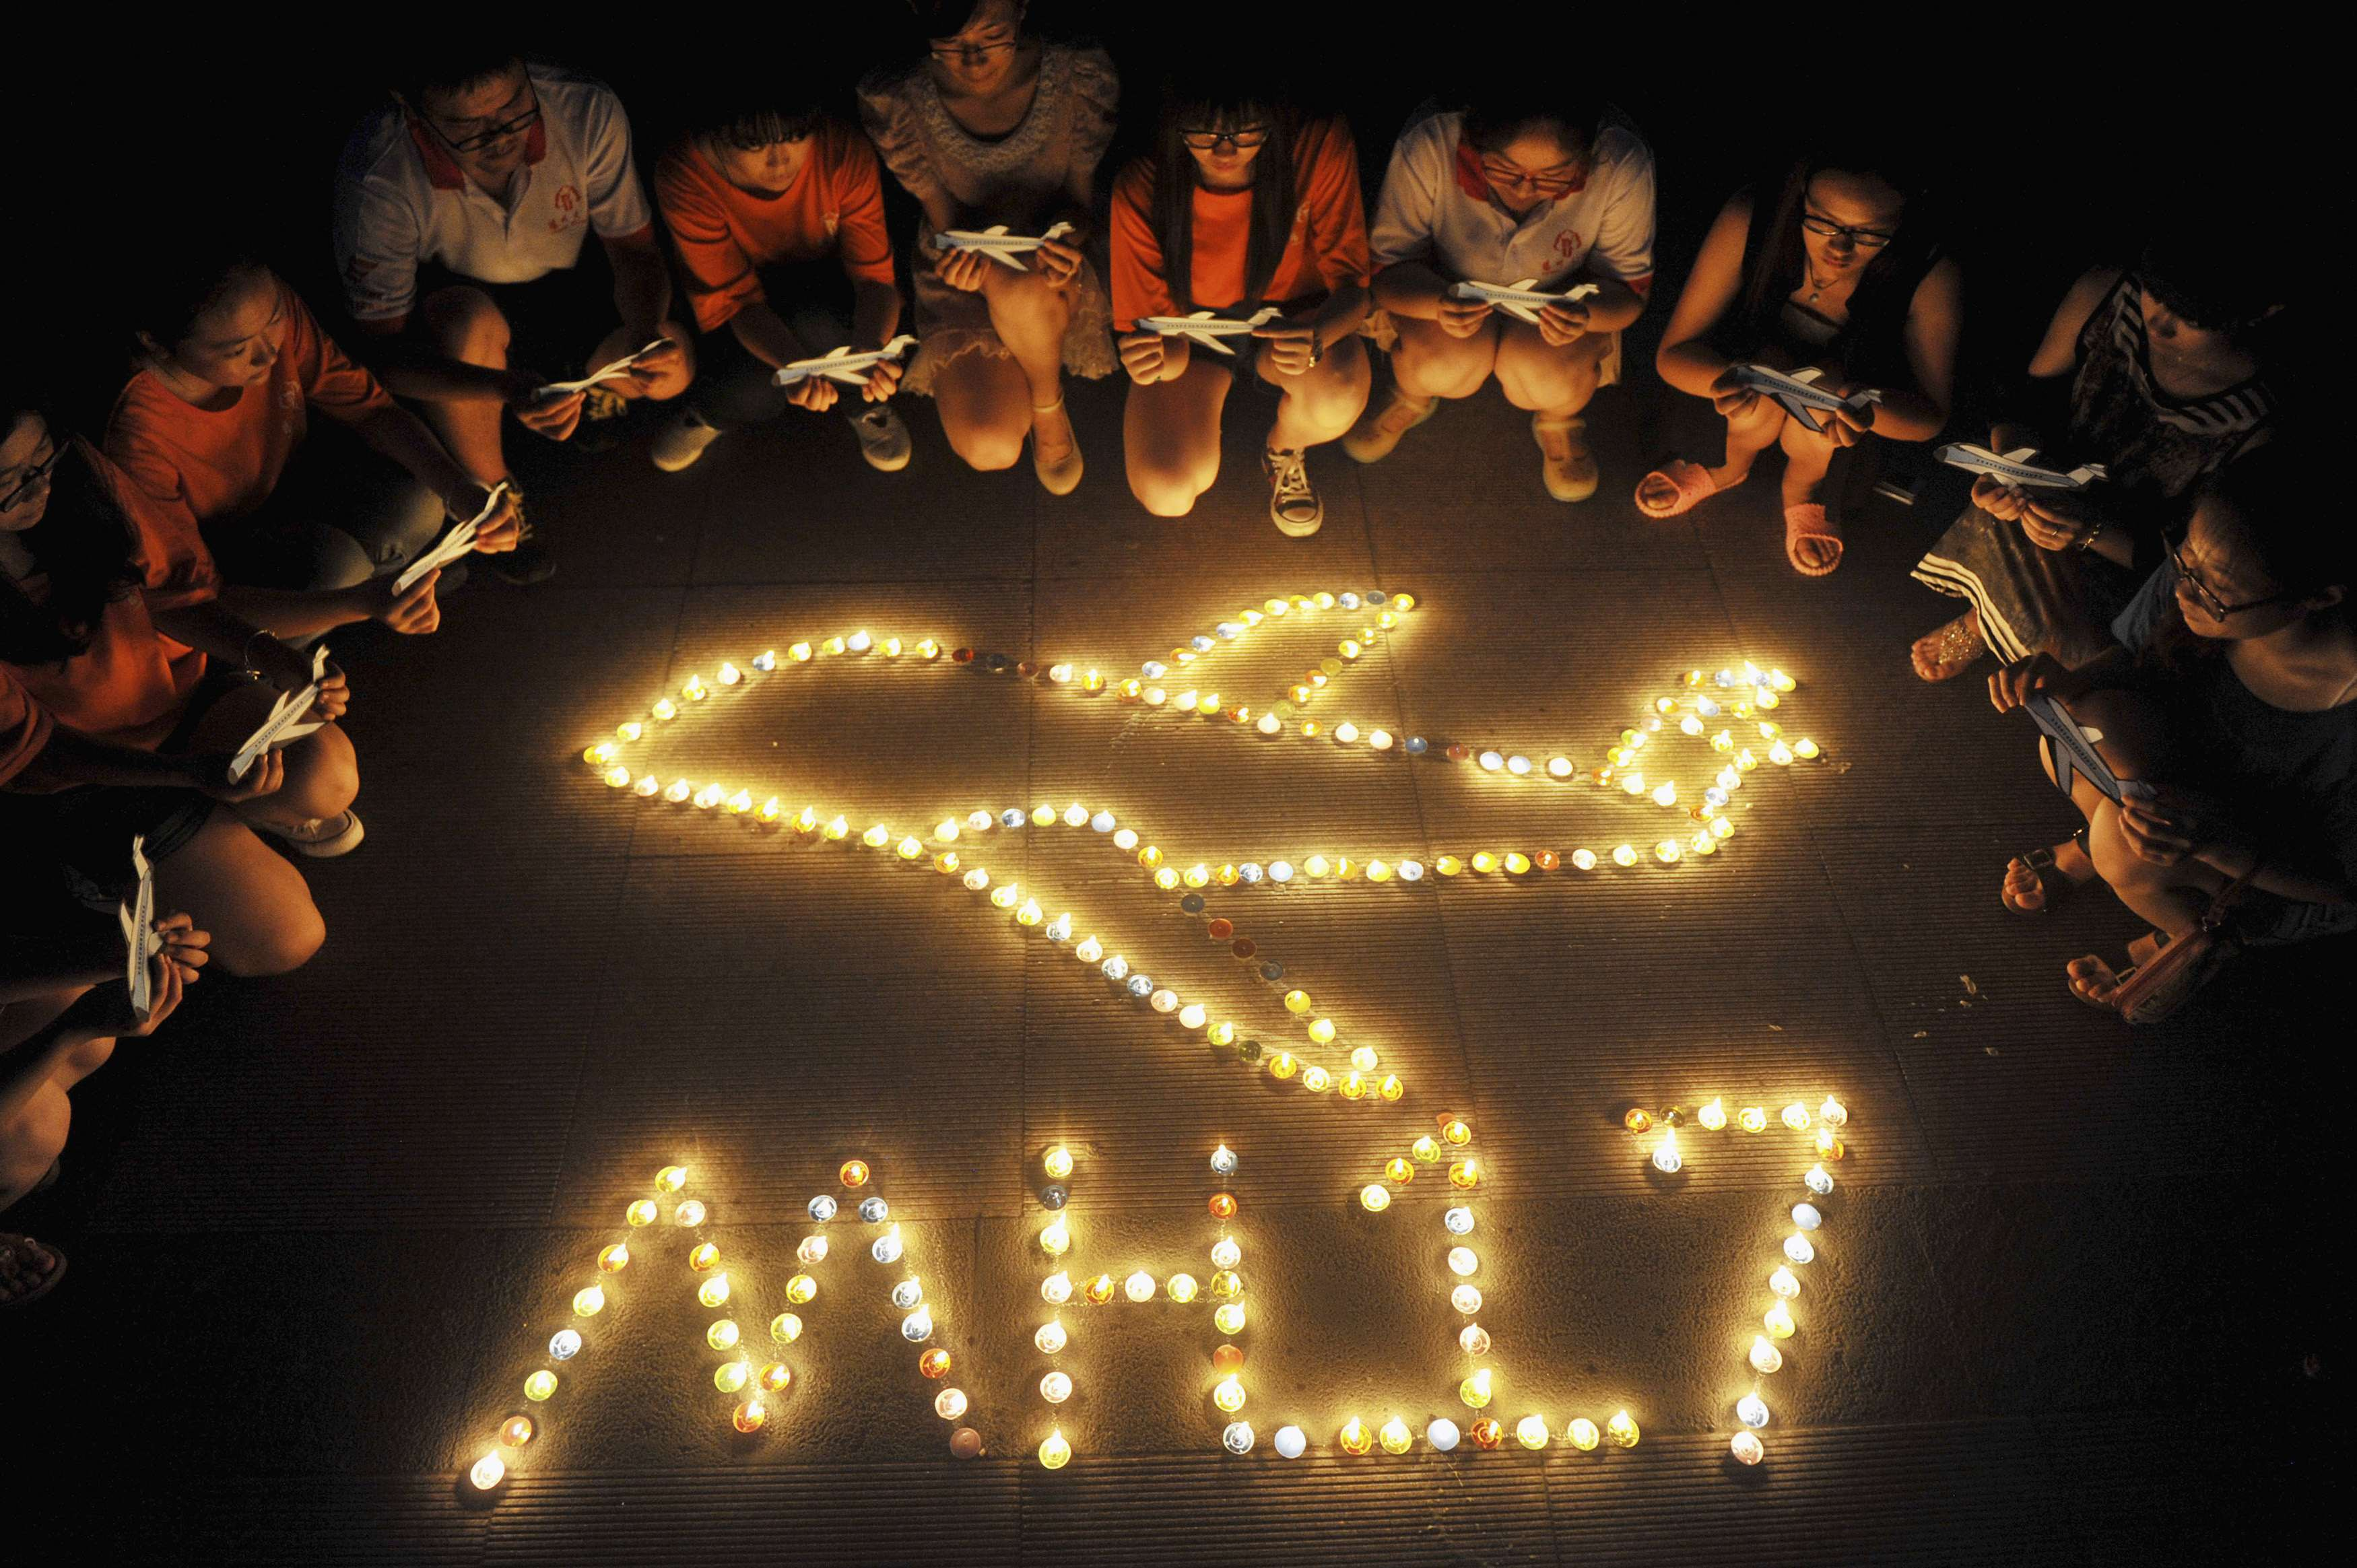 College students gather around candles forming the shape of an airplane, during a candlelight vigil for victims of the downed Malaysia Airlines Flight MH17, at a university in Yangzhou, Jiangsu province July 19, 2014. — Reuters pic